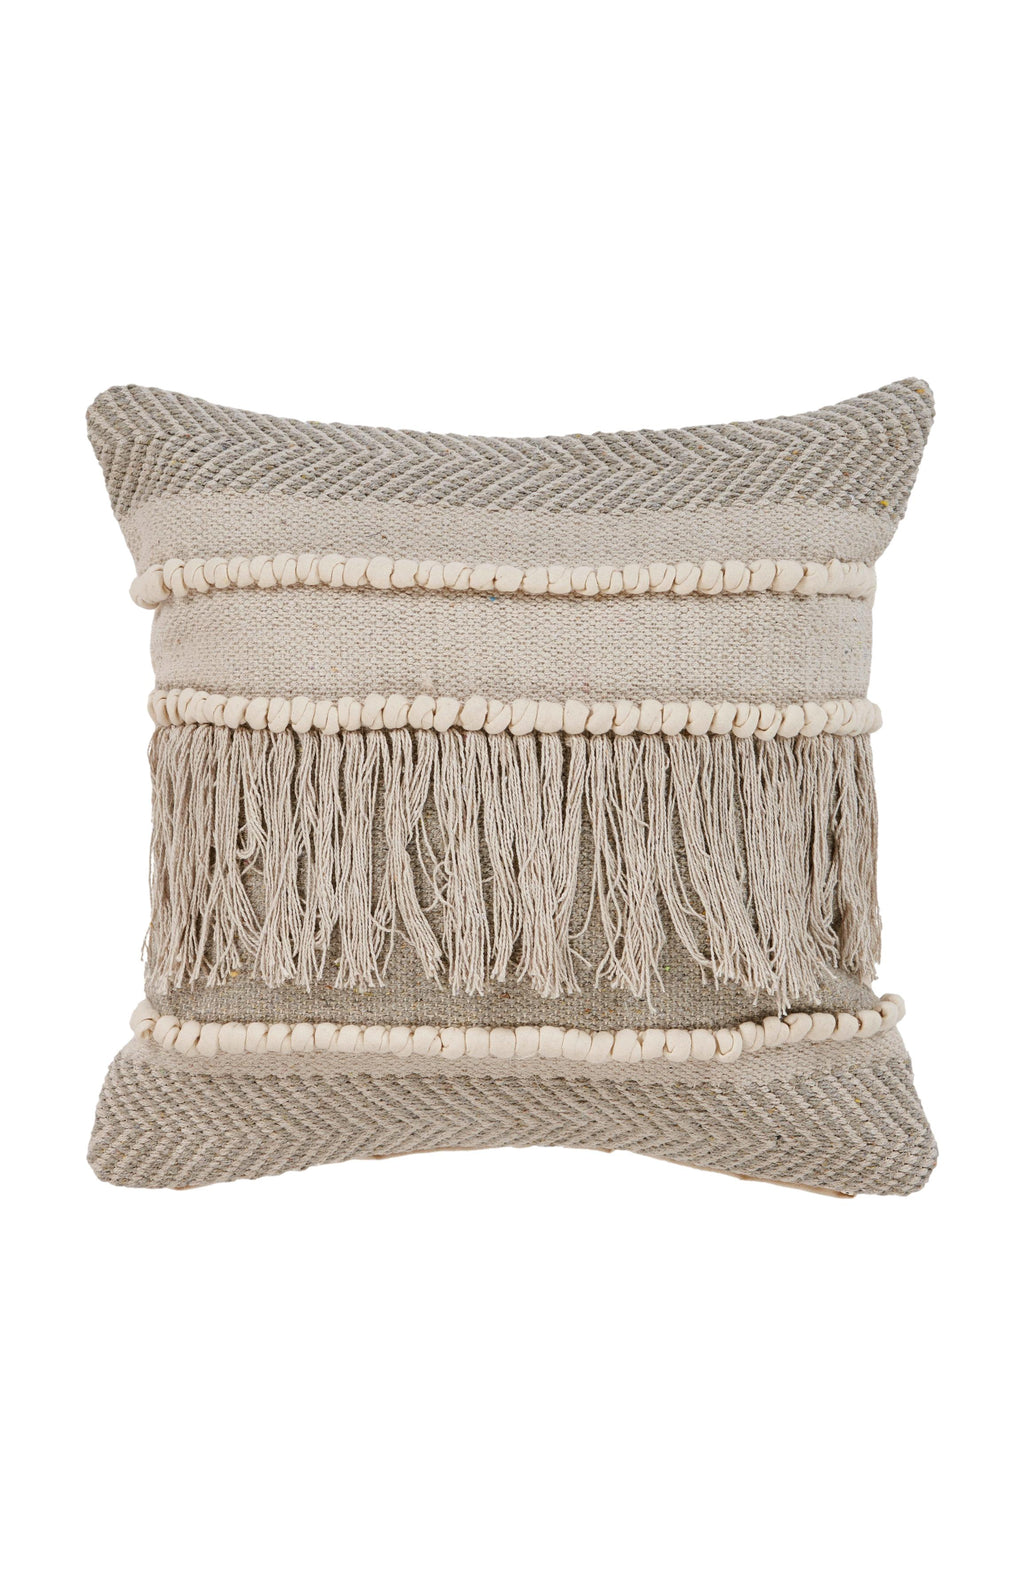 Beige Farmhouse Throw Pillow